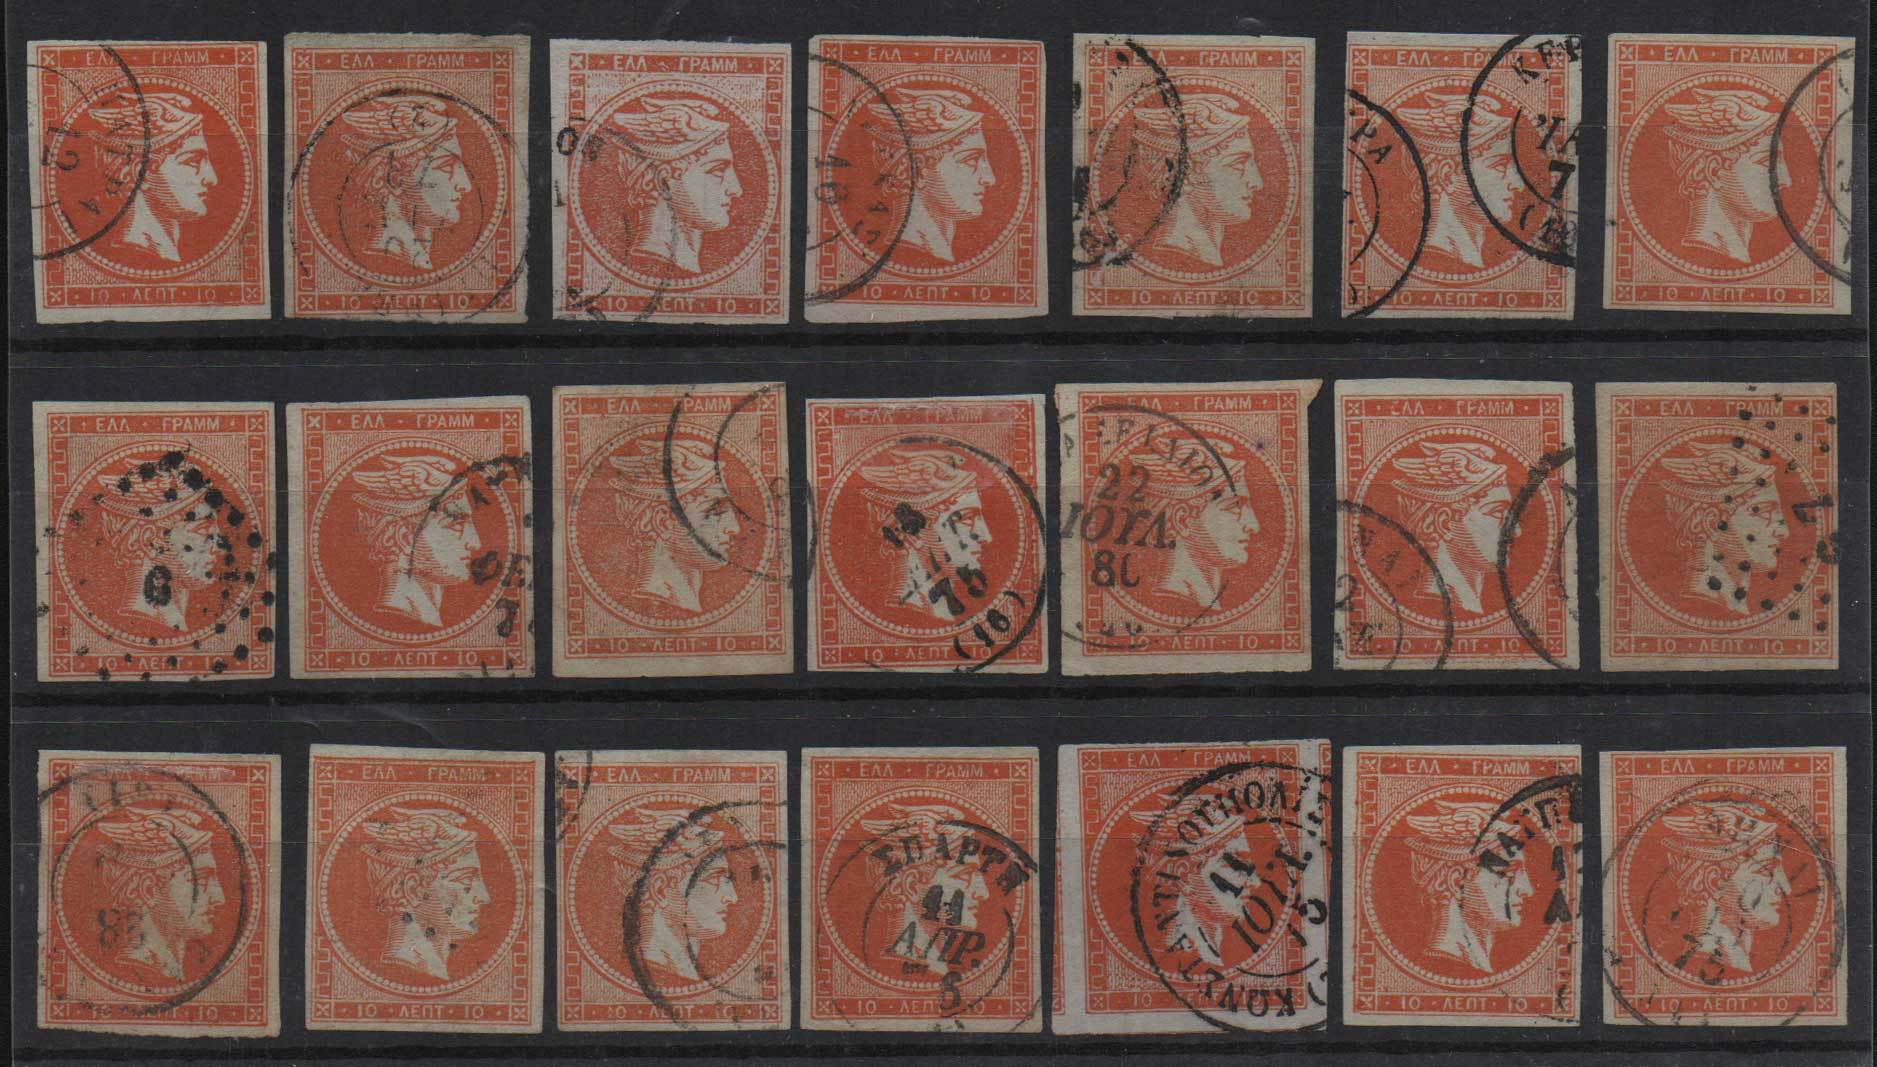 Lot 12 - -  LARGE HERMES HEAD large hermes head -  Athens Auctions Public Auction 70 General Stamp Sale